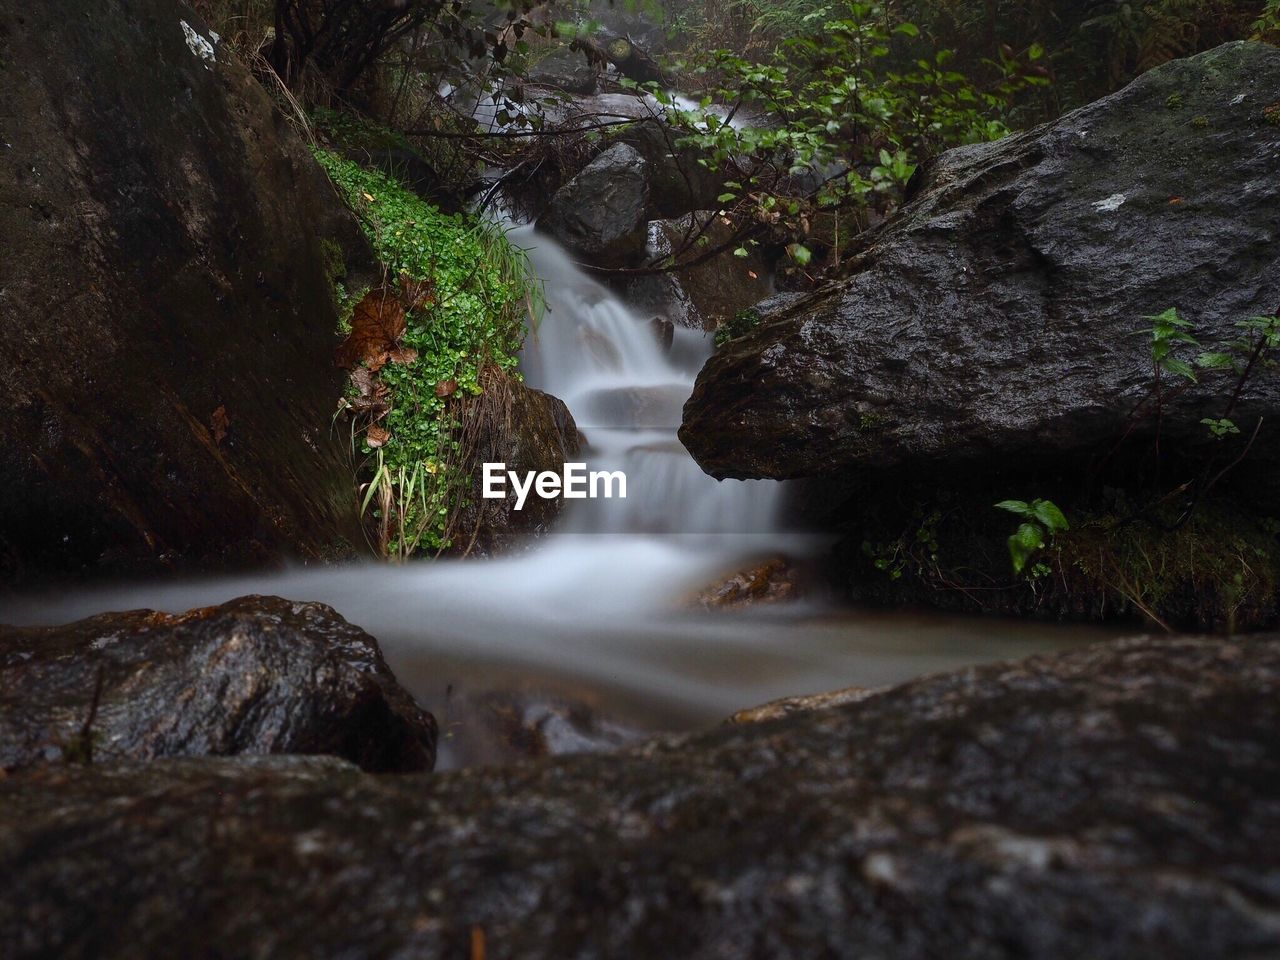 rock, rock - object, water, solid, scenics - nature, flowing water, beauty in nature, long exposure, waterfall, motion, forest, no people, land, tree, nature, plant, blurred motion, environment, flowing, outdoors, stream - flowing water, power in nature, rainforest